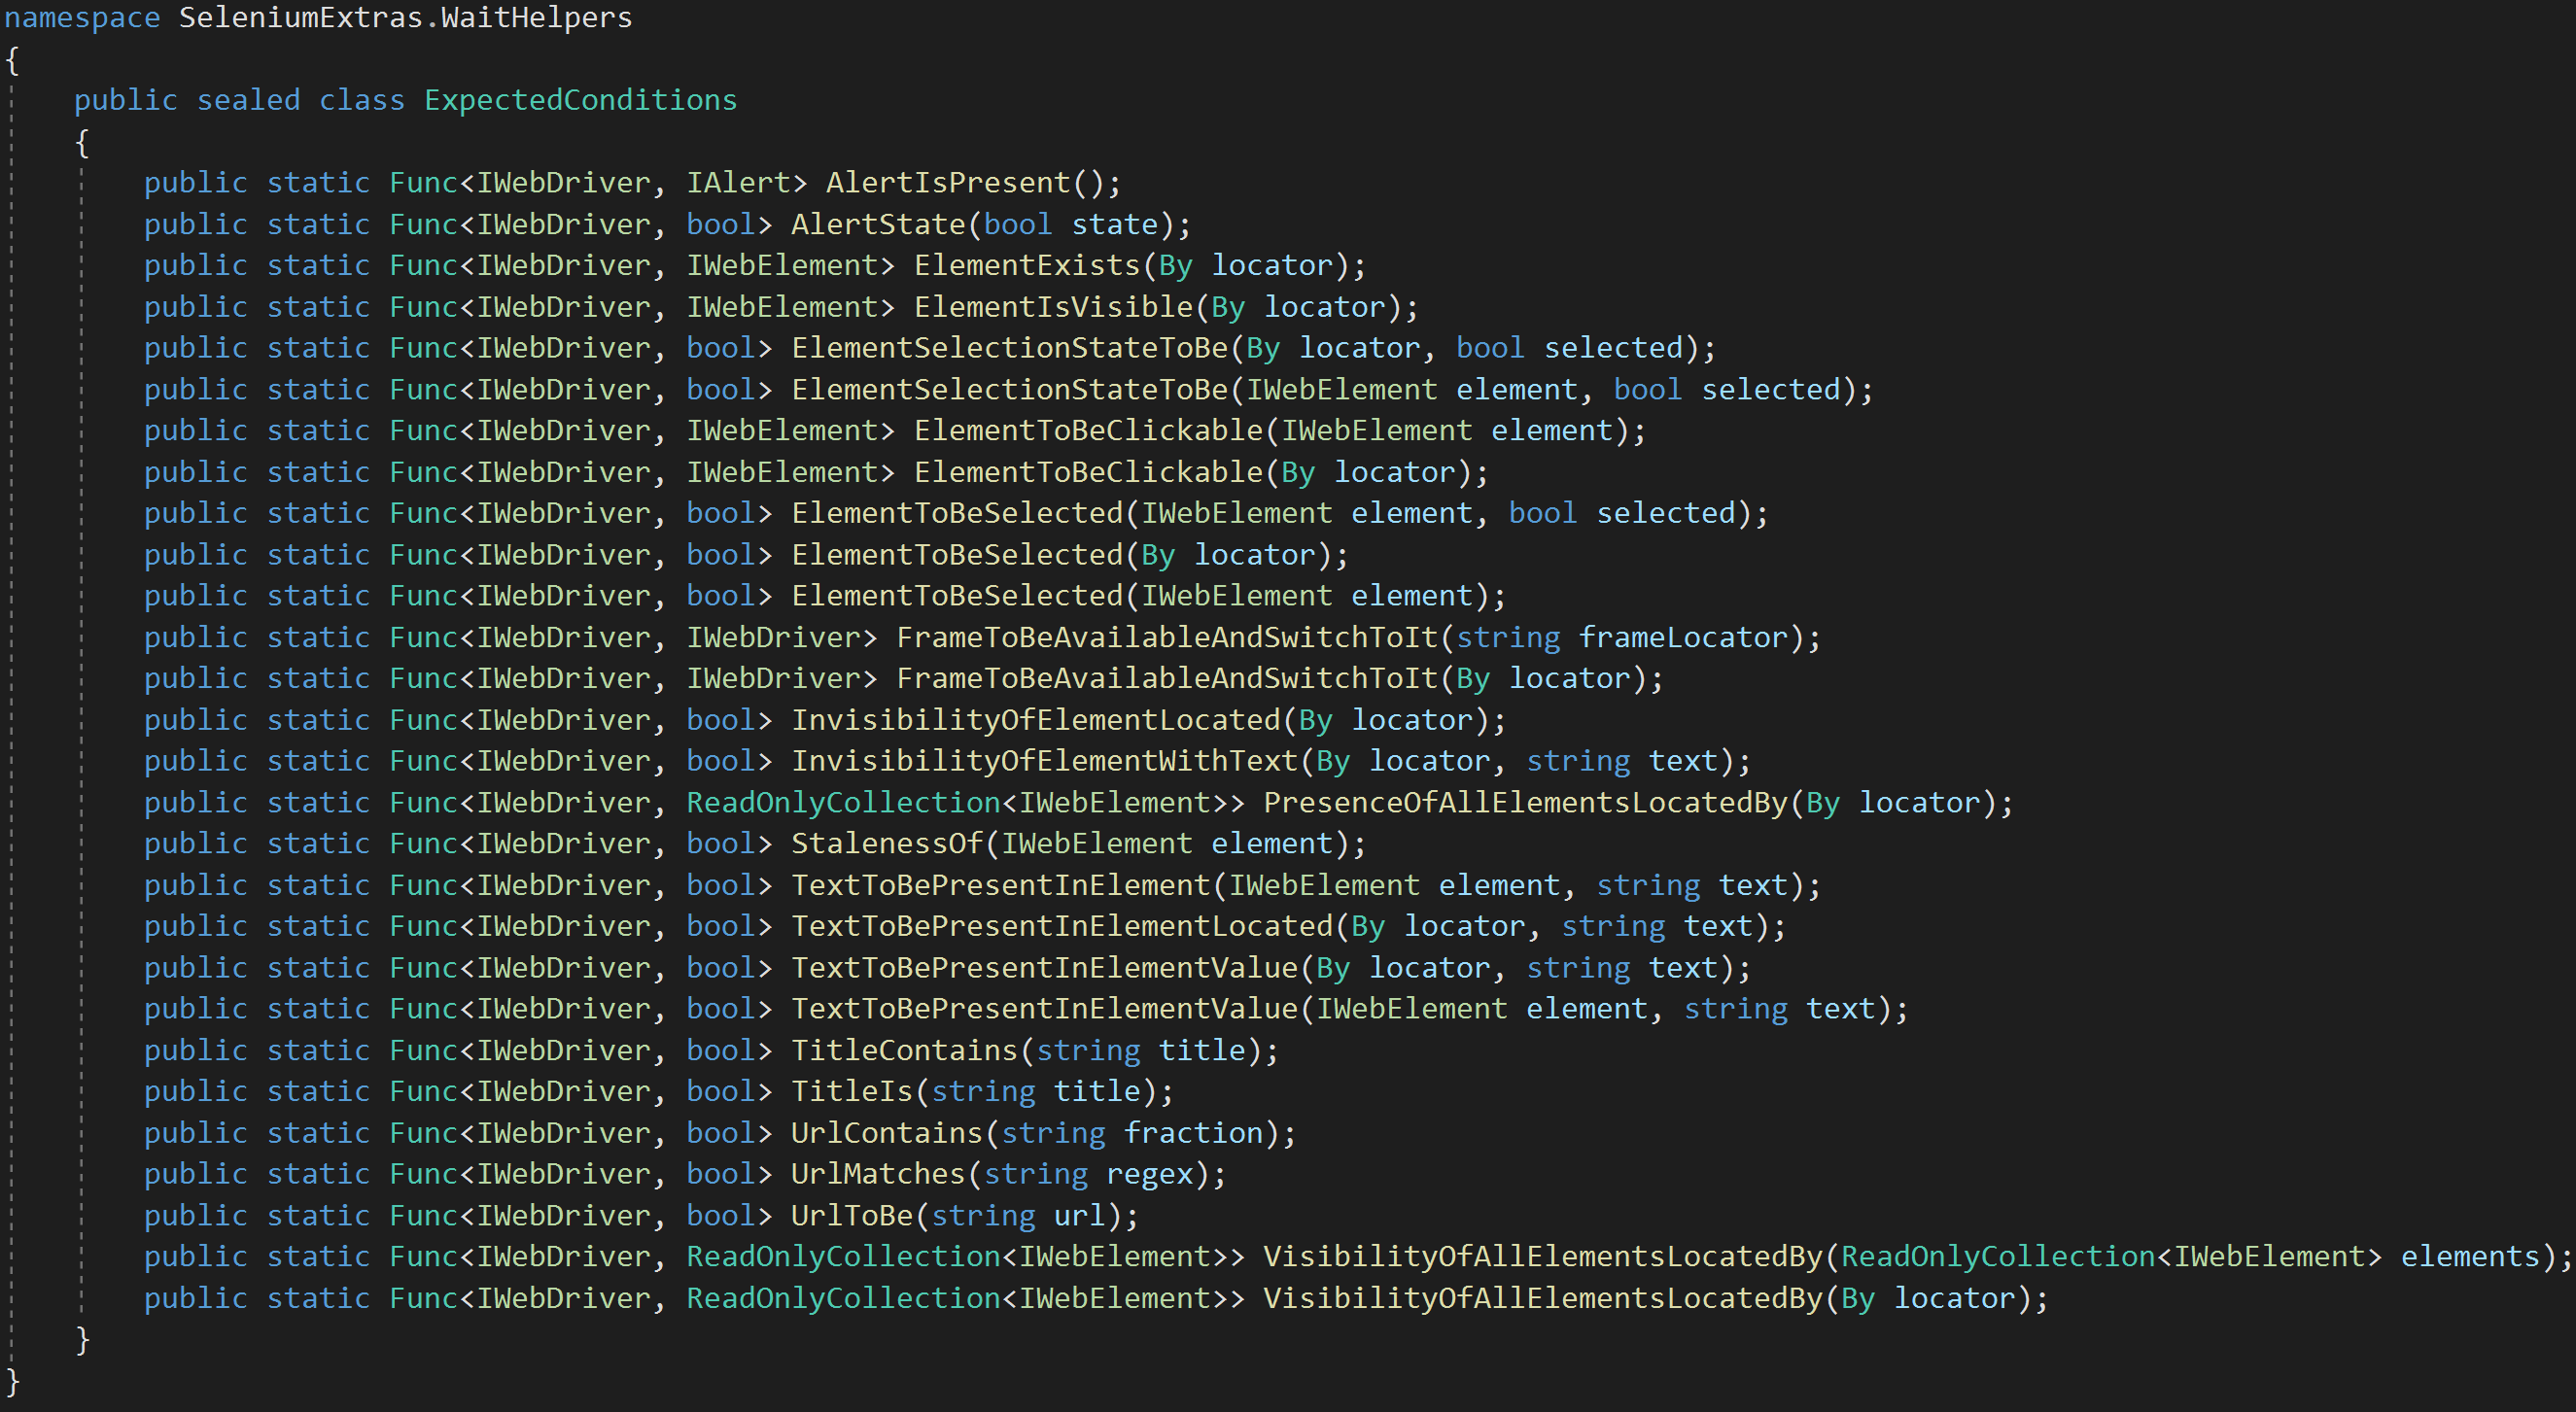 Explicit Wait Expected Conditions in C#